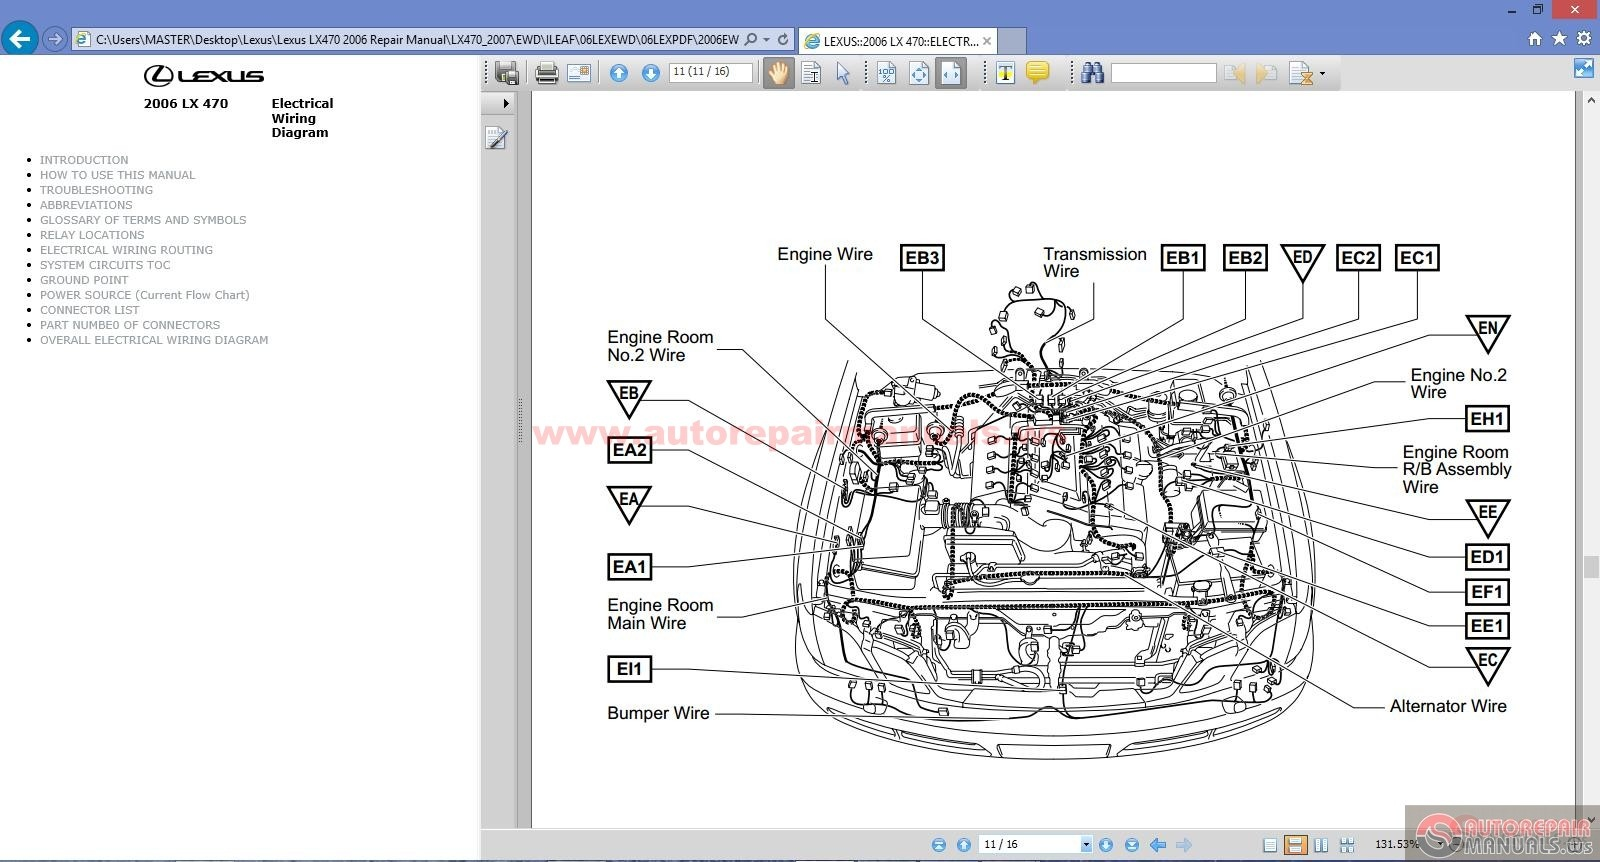 2000 lexus gs300 fuse diagram 2000 trailer wiring diagram for lexus es350 wiring diagram